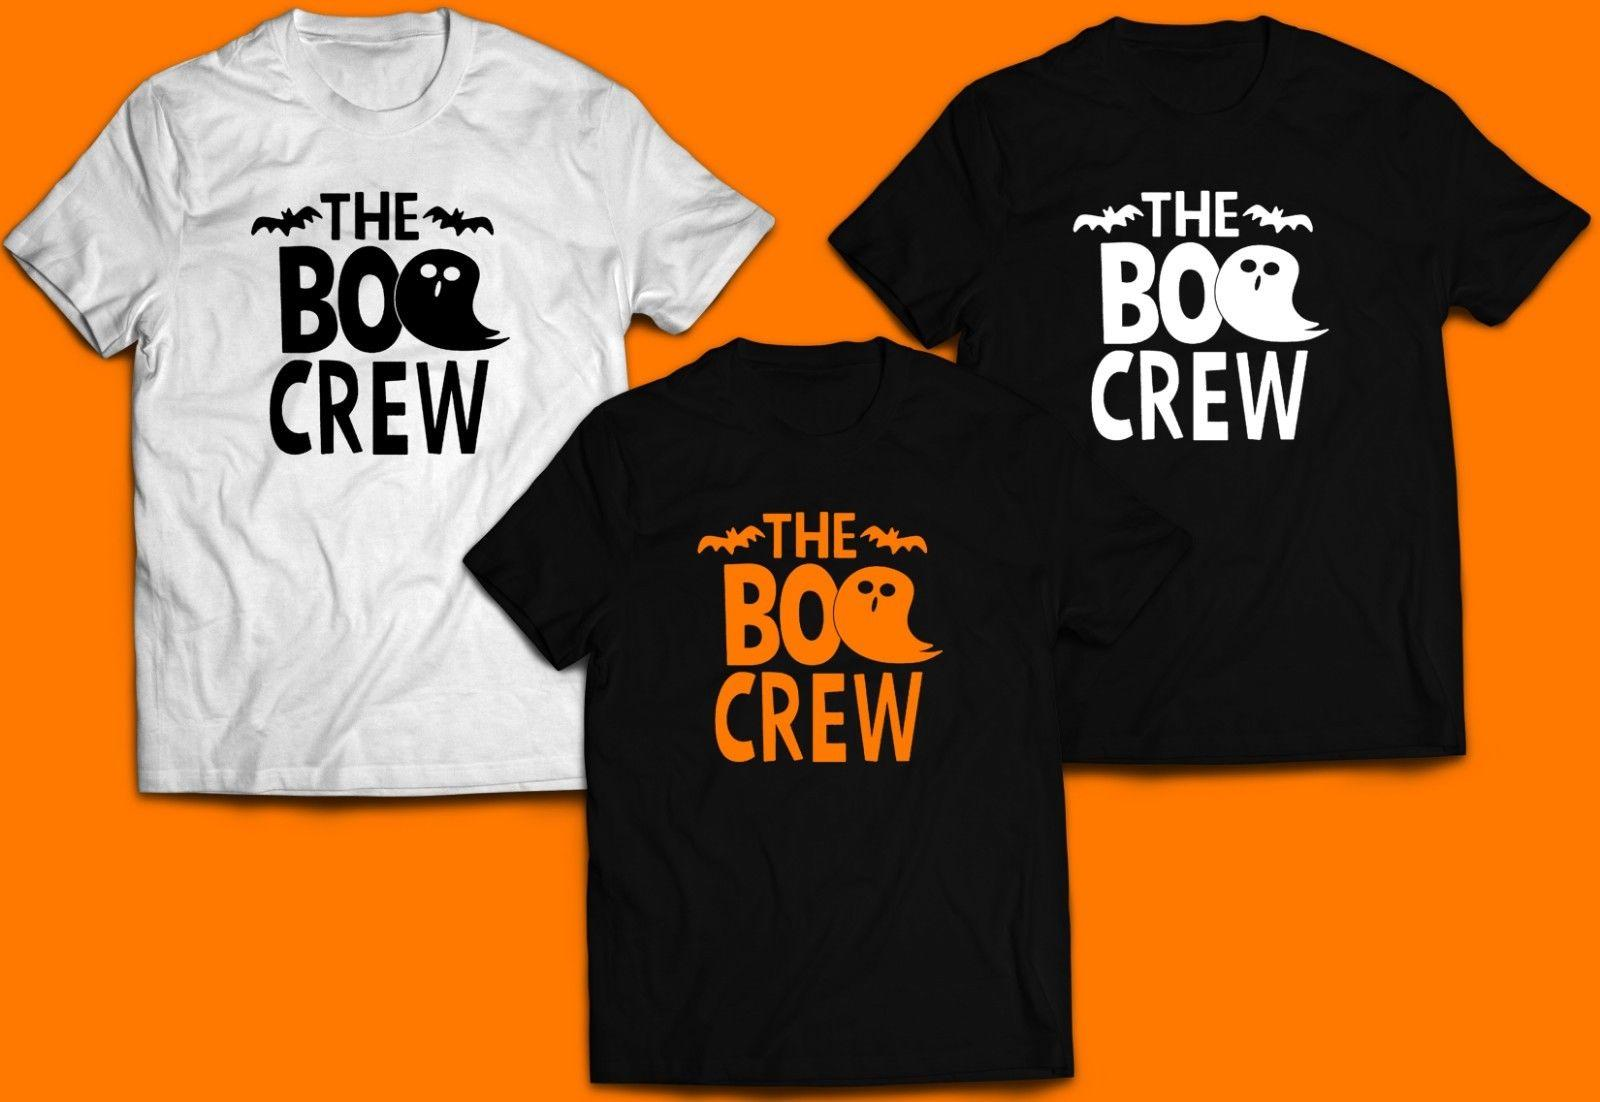 a62d018b Halloween Matching Family Shirts The Boo Crew Ghosts Halloween Mom Dad Kids  Funny Unisex Casual Tee Gift Top T Shirt Design Template Funny T Shirt From  ...